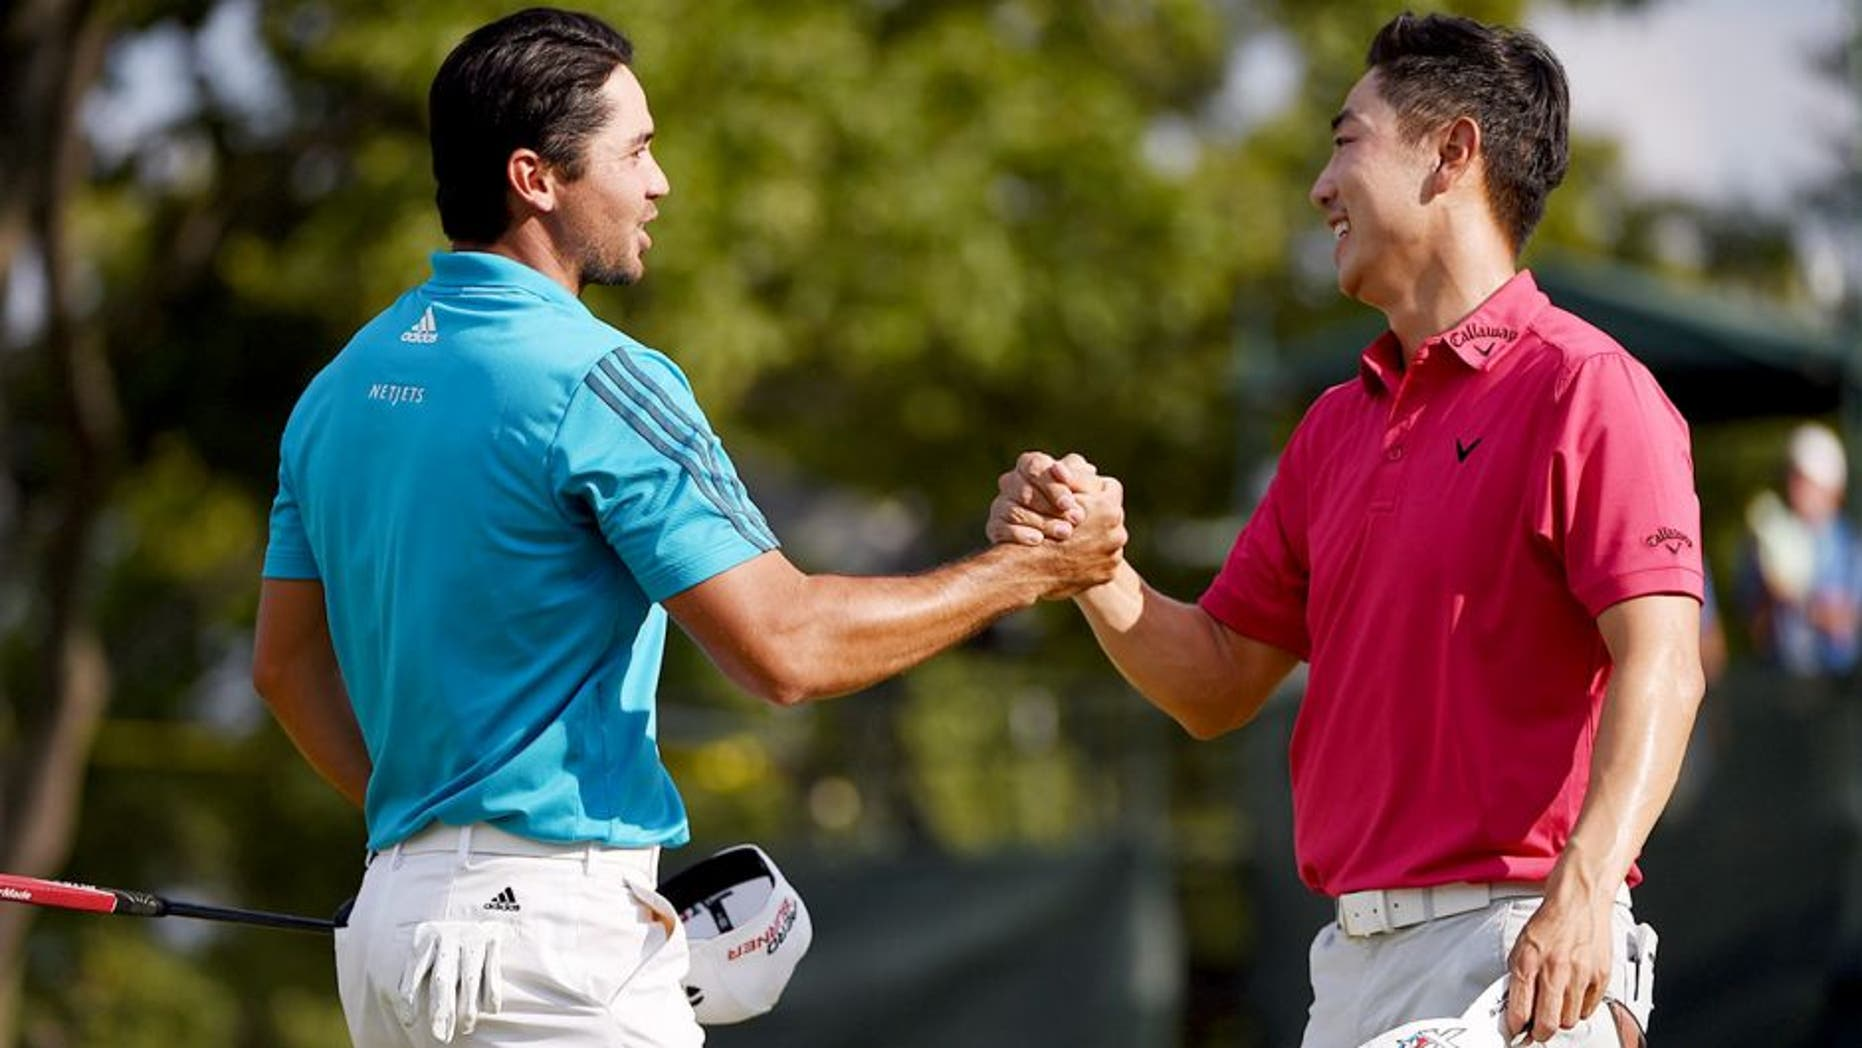 EDISON, NJ - AUGUST 29: Jason Day of Australia (L) and Sang-Moon Bae of Korea shake hands on the18th green during the third round of The Barclays at Plainfield Country Club on August 29, 2015 in Edison, New Jersey. (Photo by Ross Kinnaird/Getty Images)